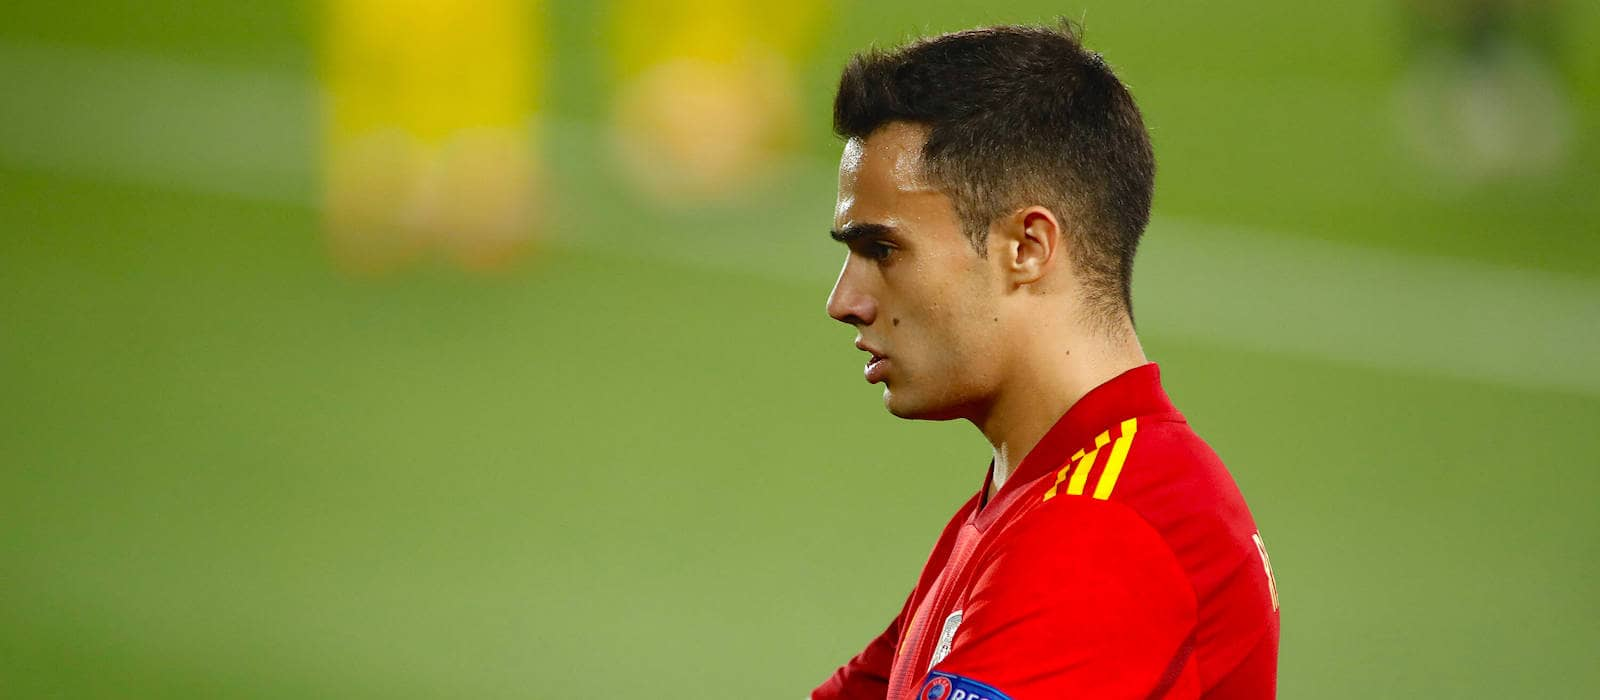 Fabrizio Romano confirms Tottenham Hotspur have signed Sergio Reguilon